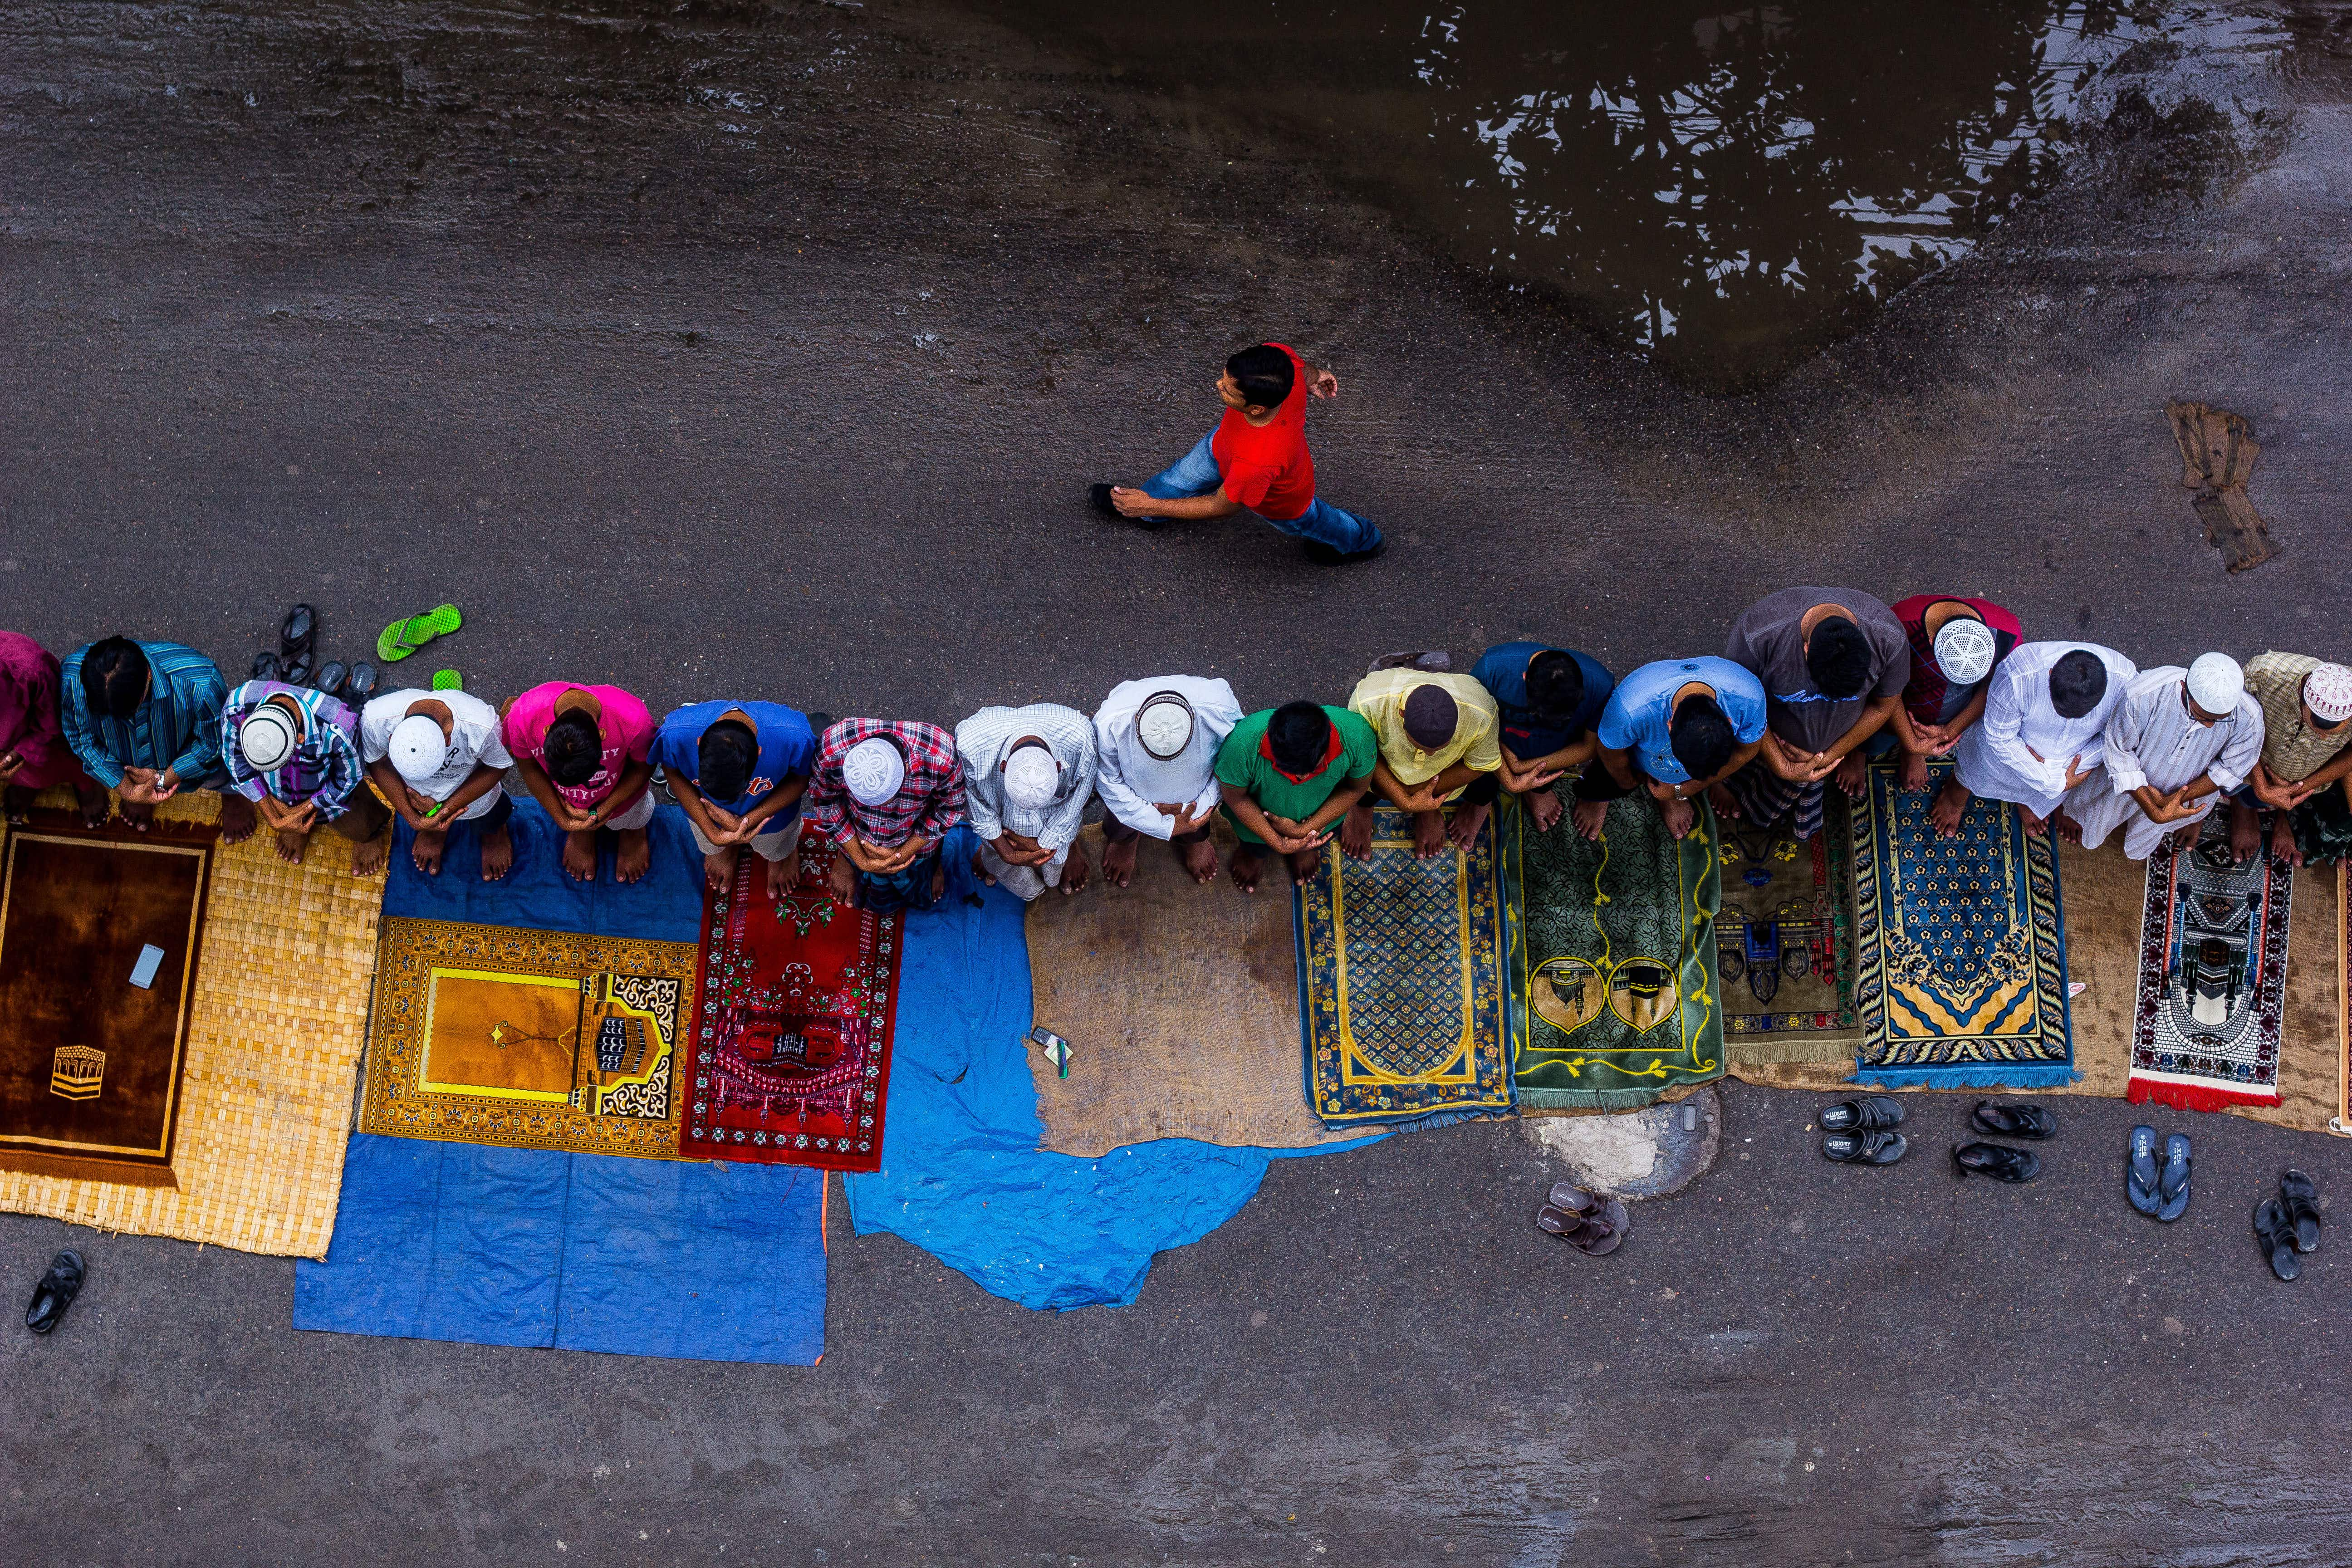 Photographer captures the joy of everyday street life in bustling Bangladesh